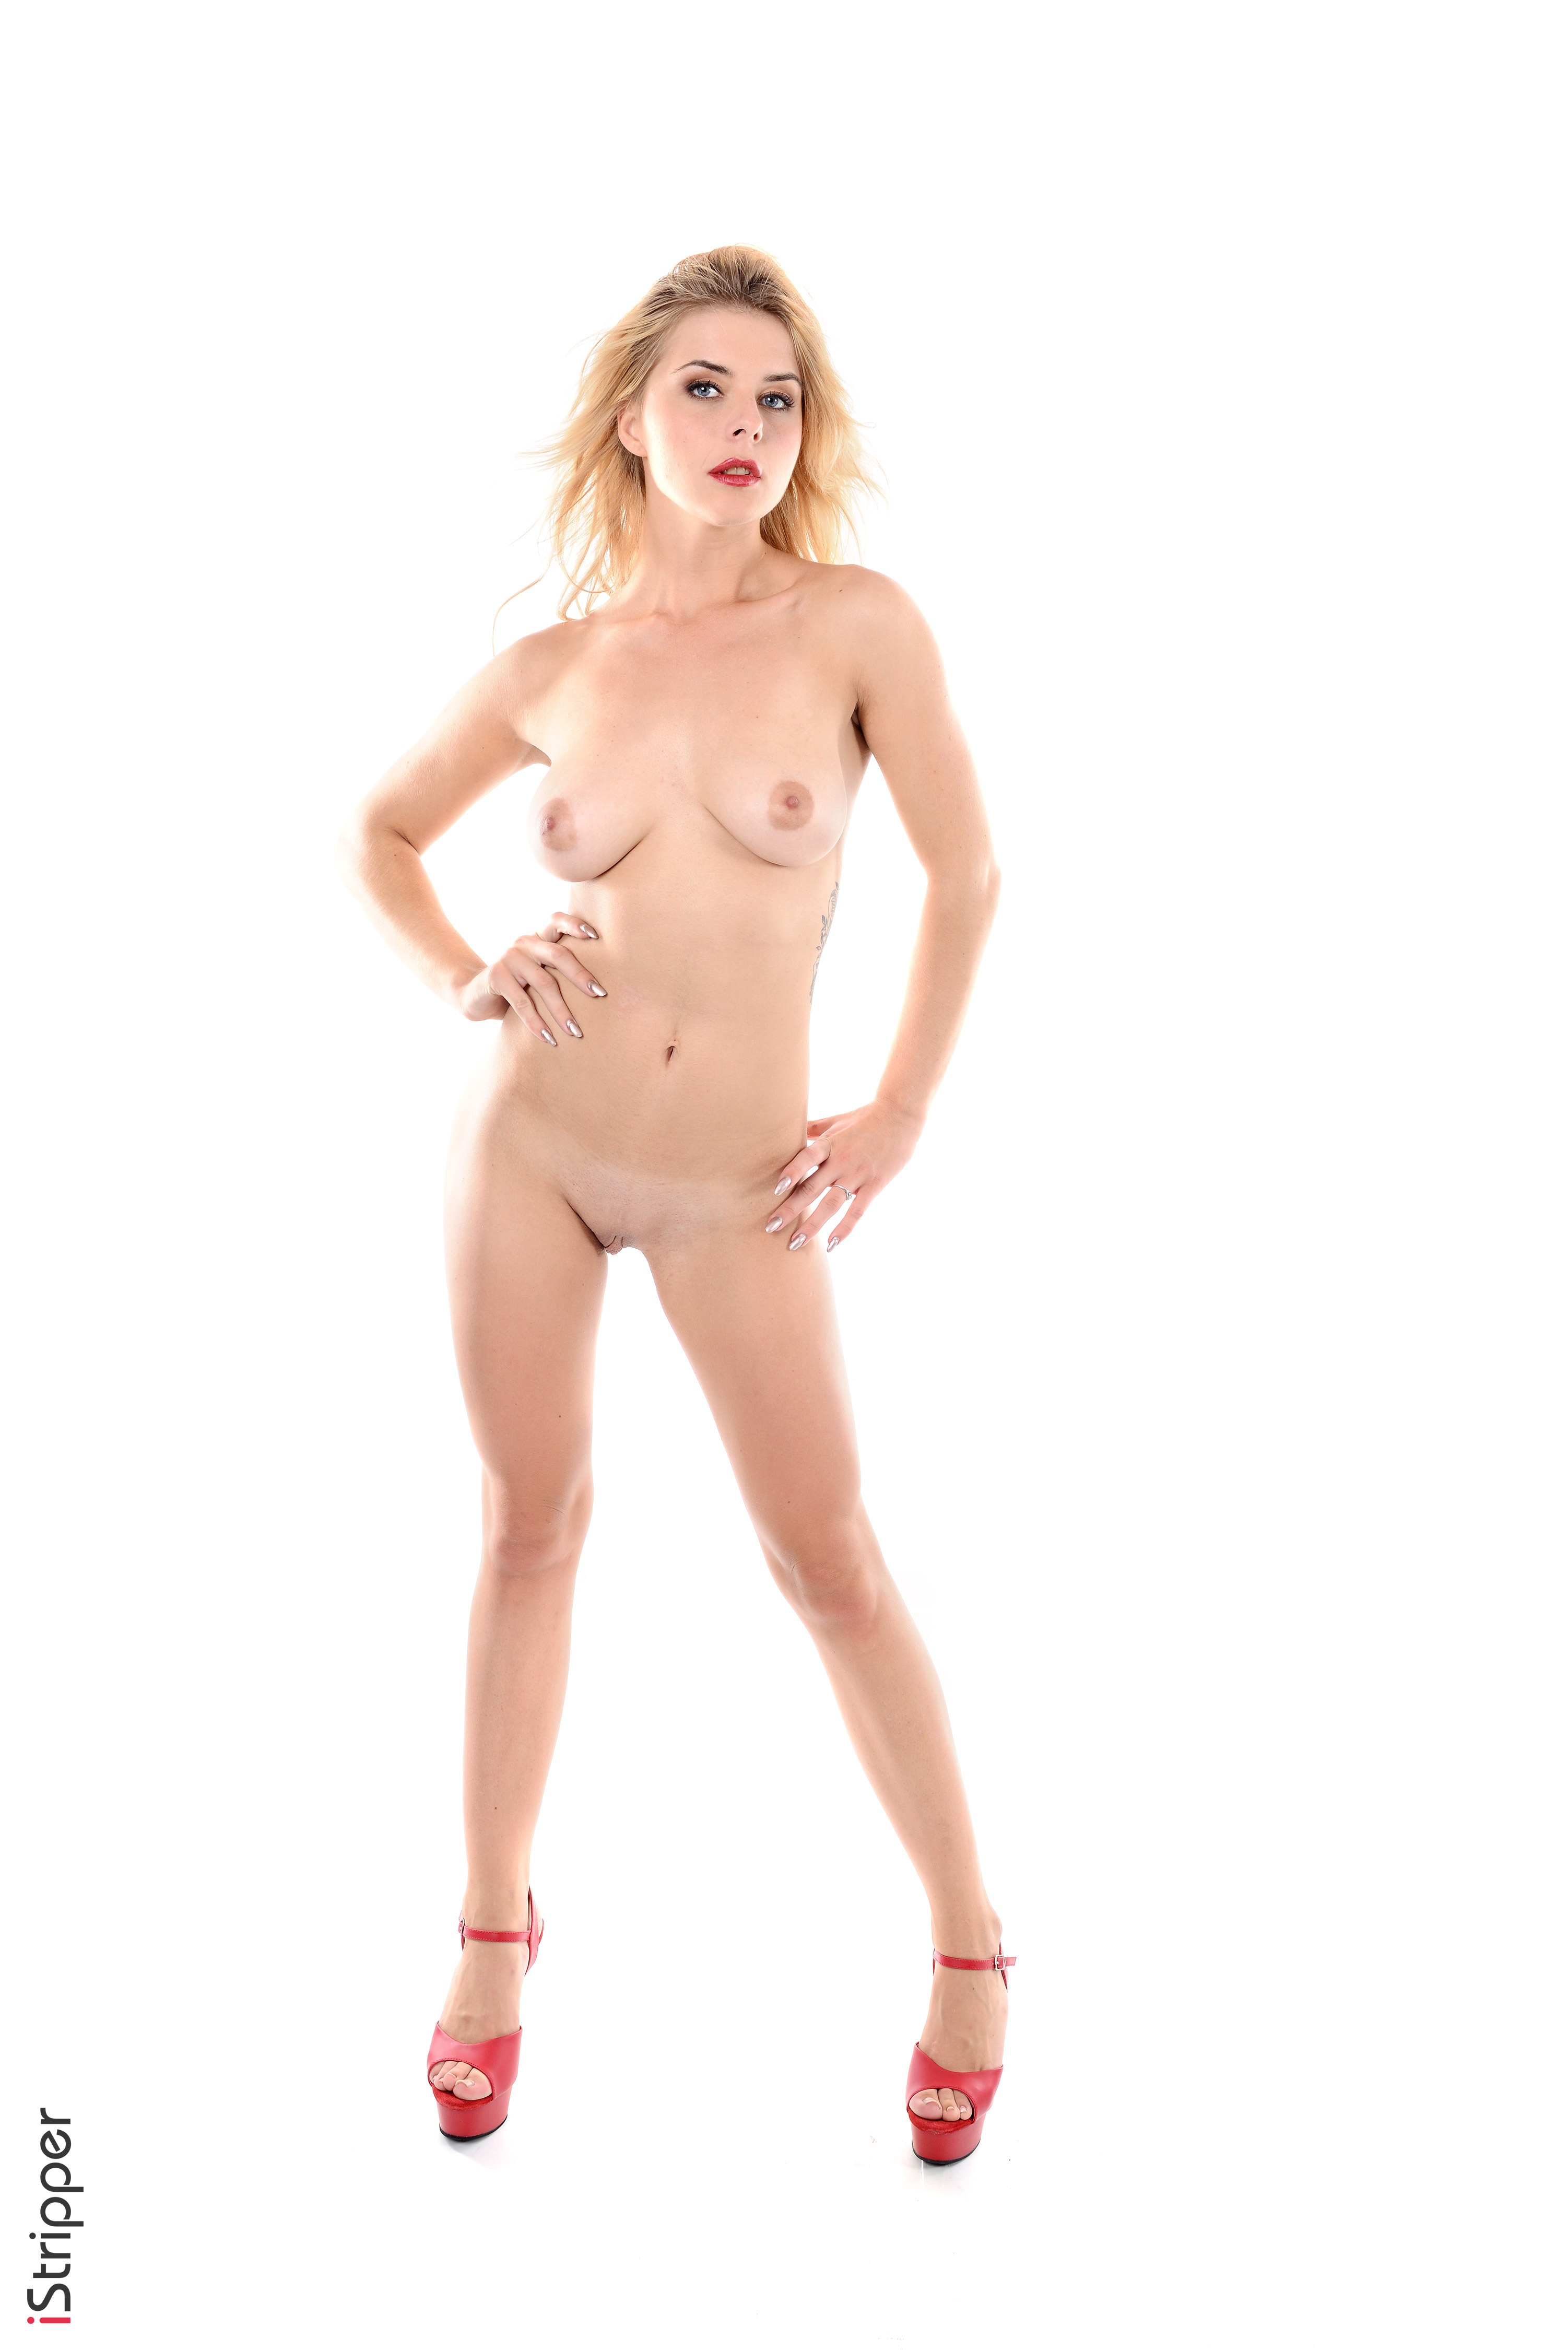 hot pussy s for free